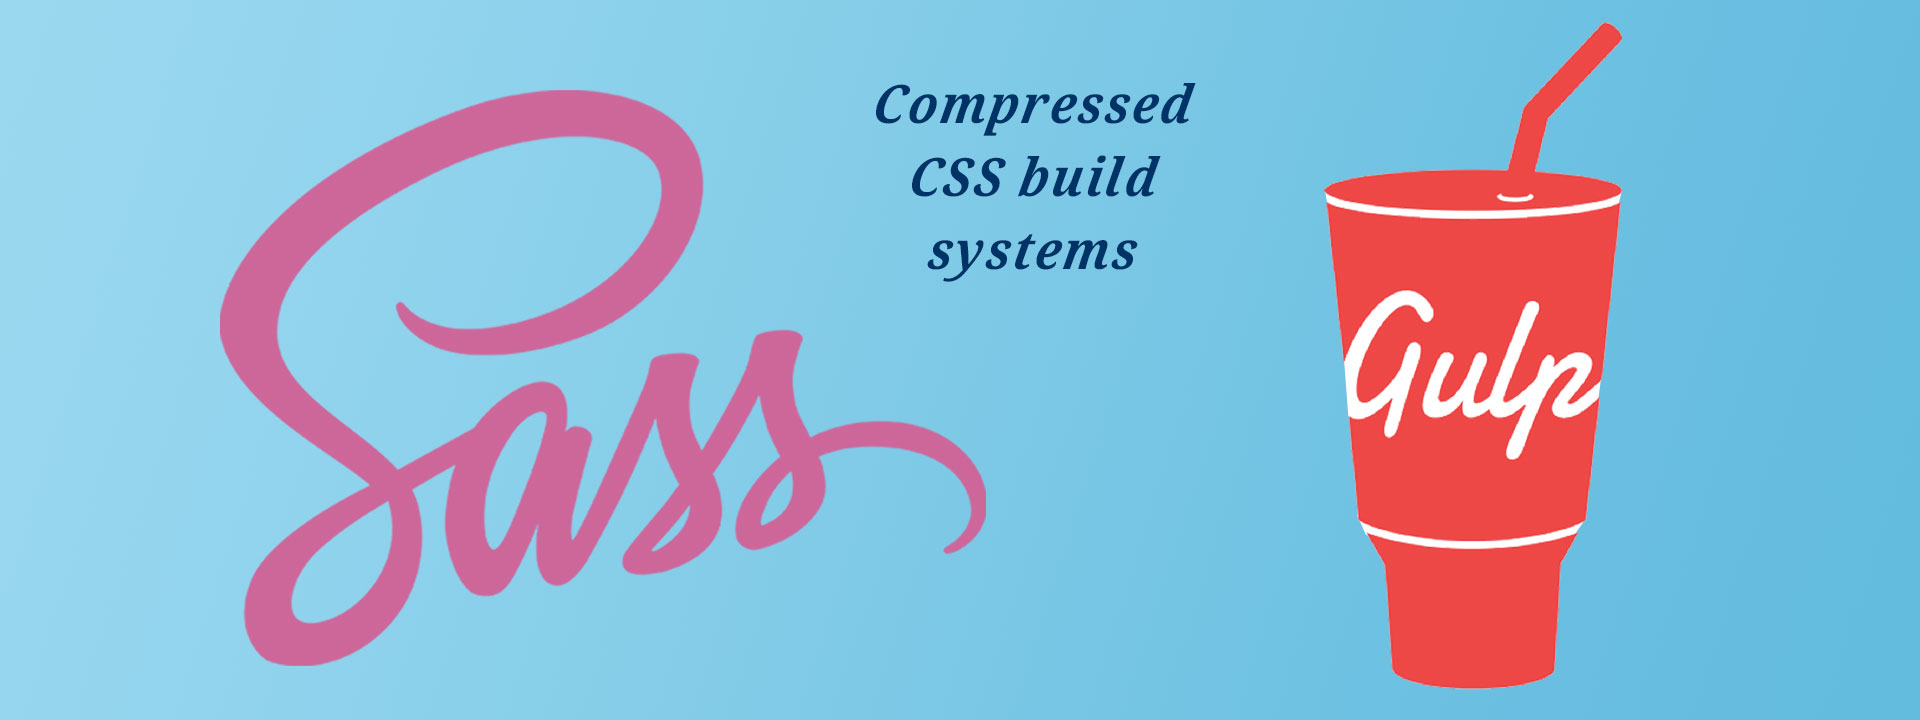 SASS and Gulp compressed css build systems